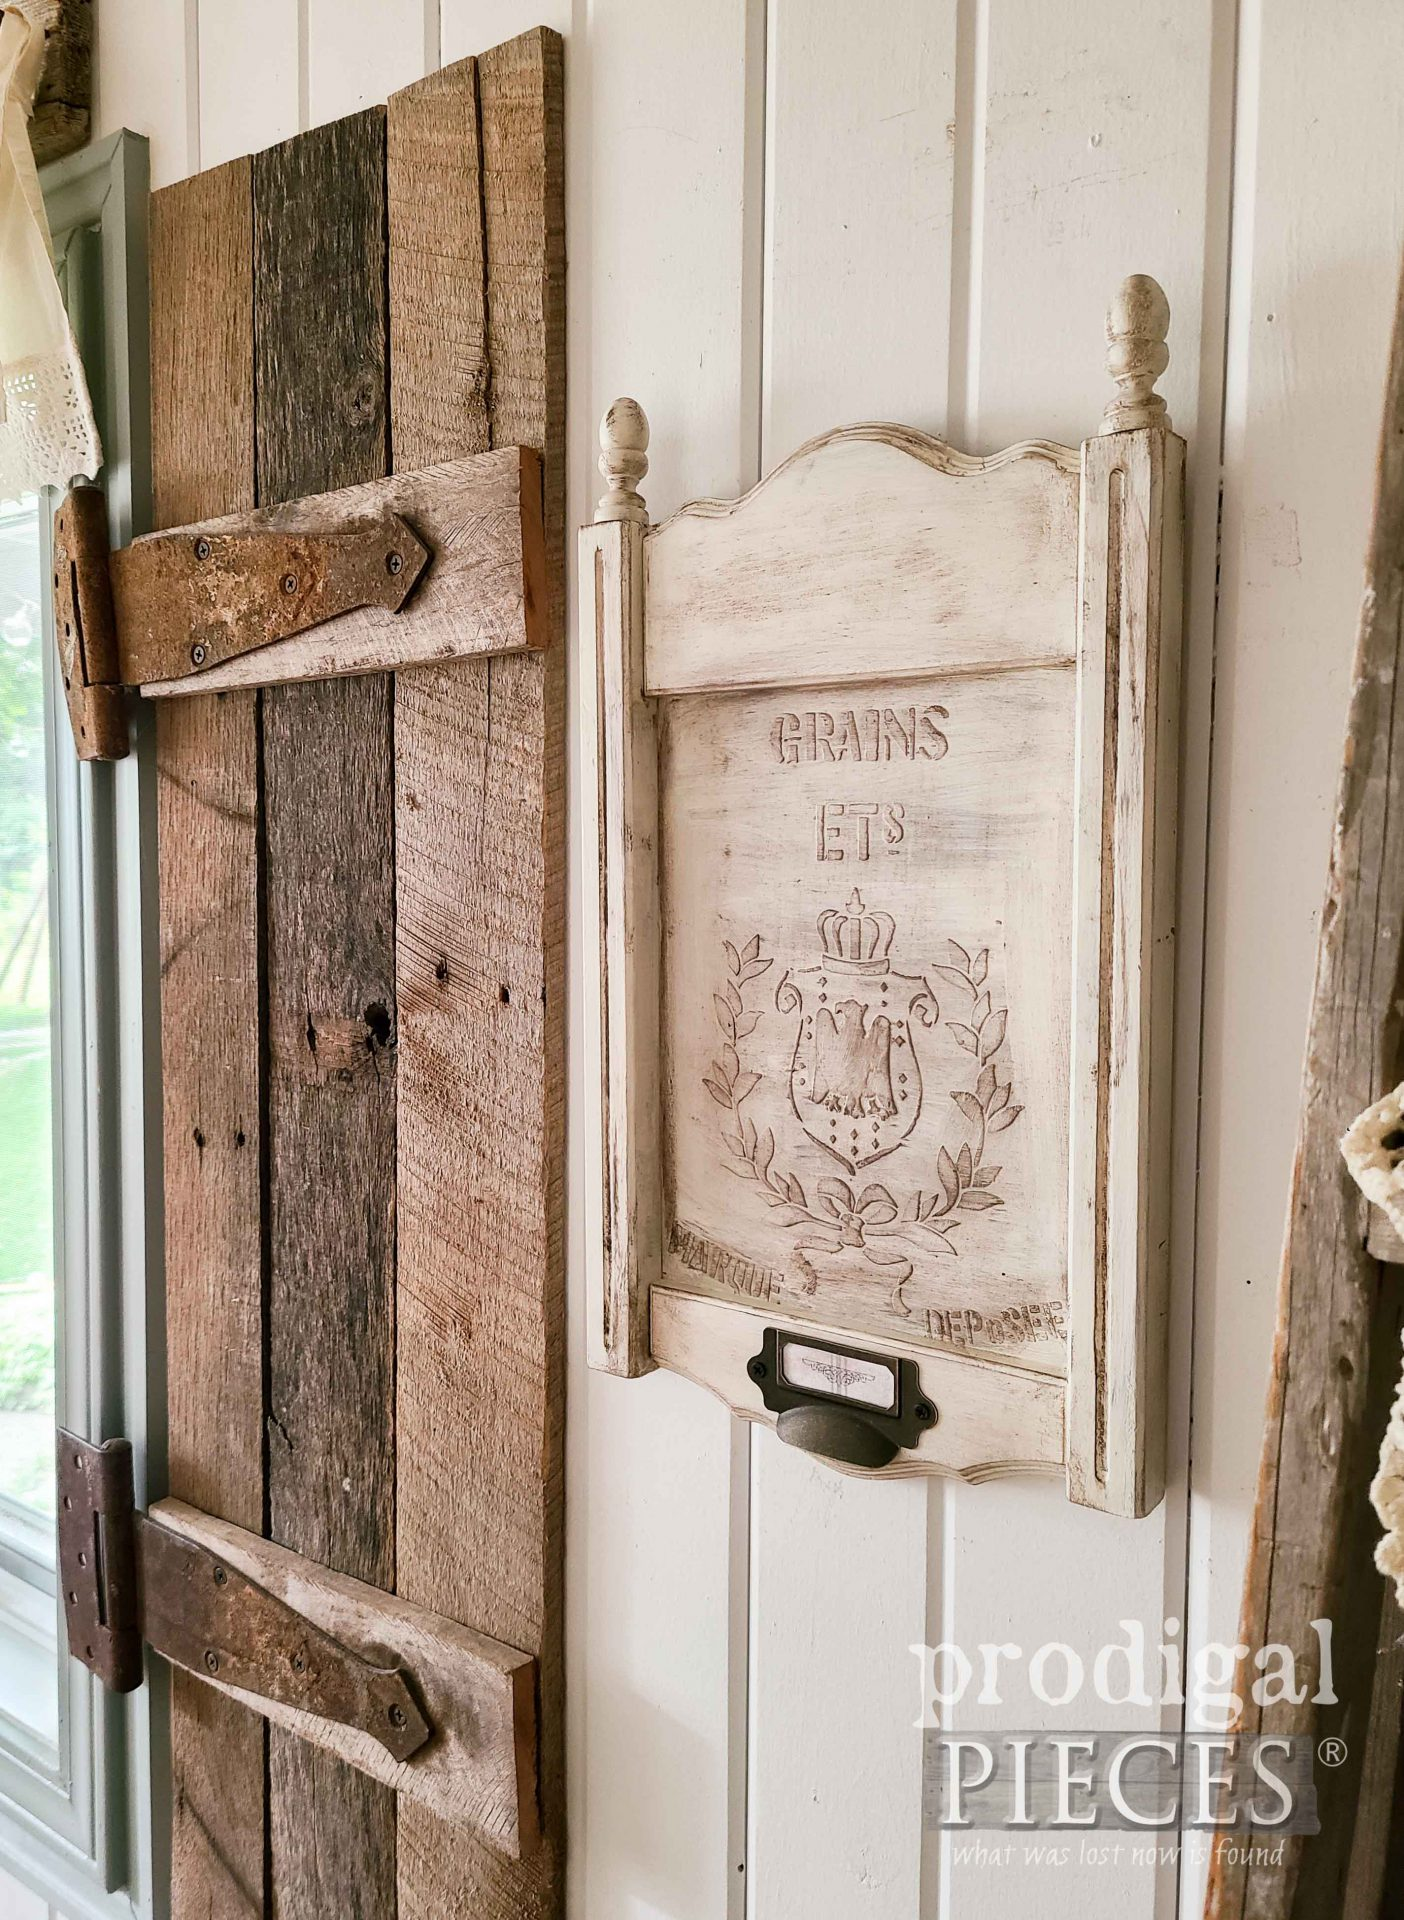 Upcycled Frame Turned DIY farmhouse Wall Art by Larissa of Prodigal Pieces | prodigalpieces.com #prodigalpieces #farmhouse #diy #home #art